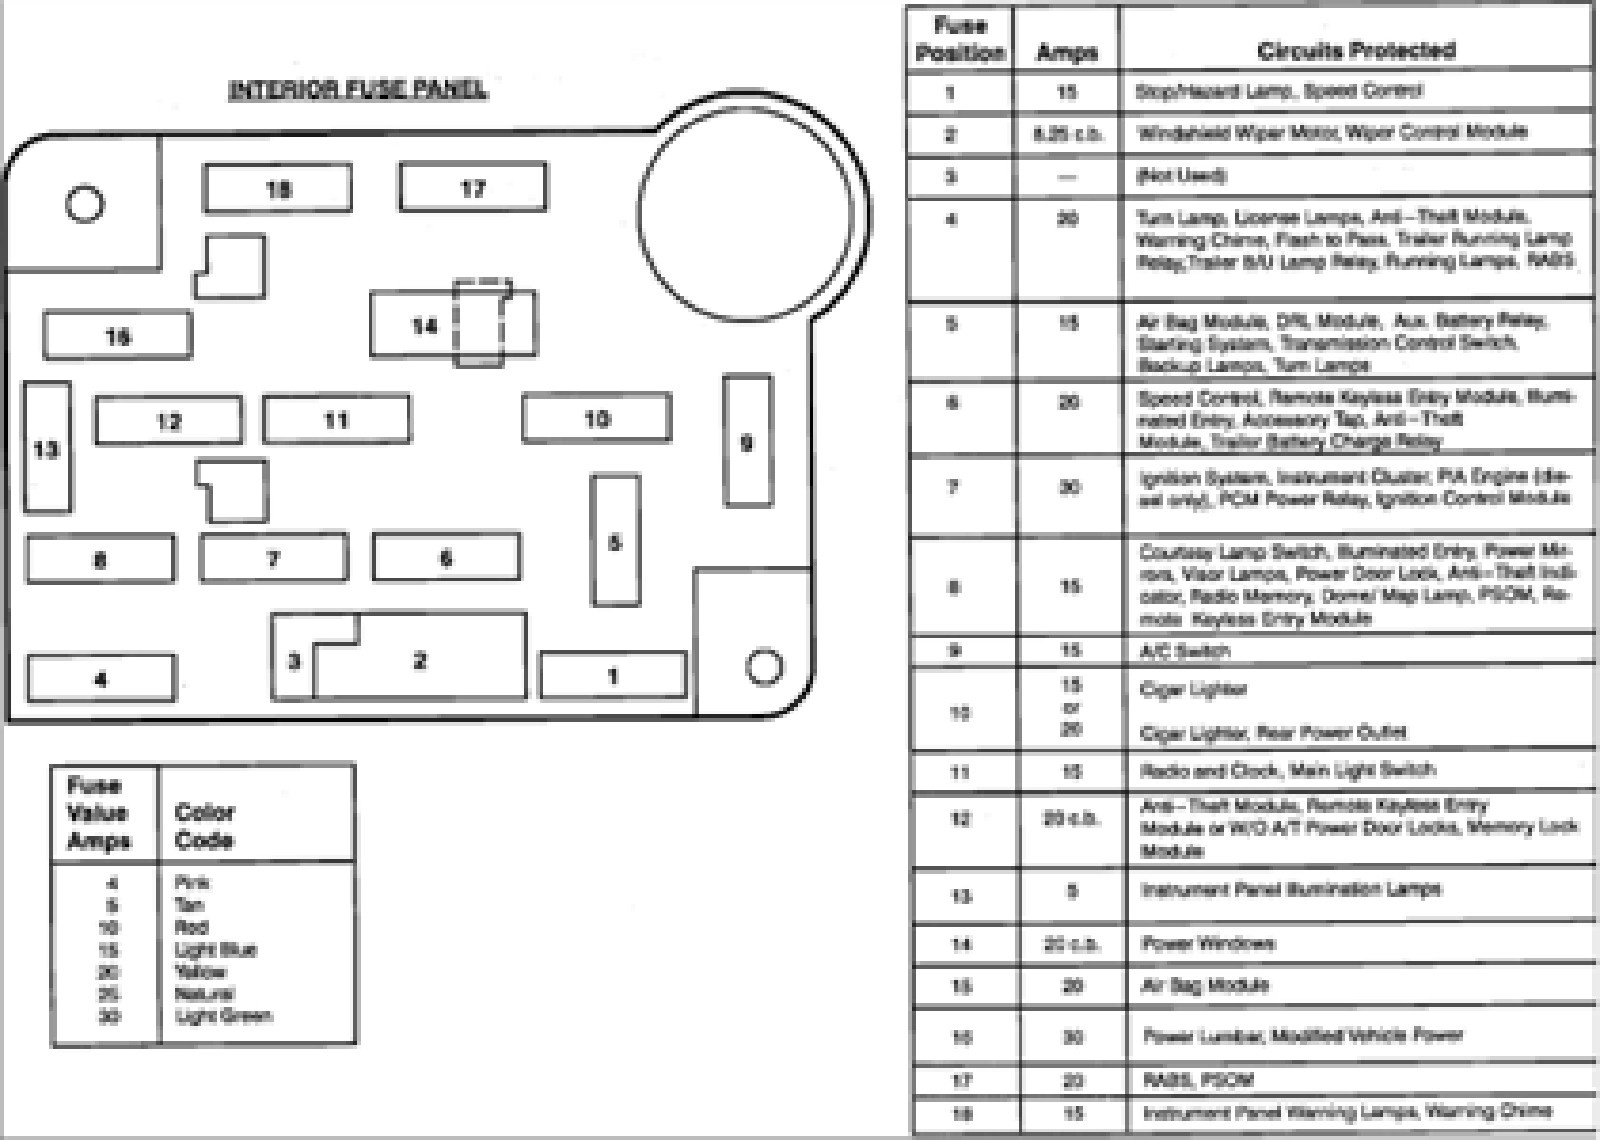 Fuse Diagram For 1997 Jeep Wrangler Wiring Library And Relay Ford E 150 Questions A 1993 Econoline Van Rh Cargurus Com